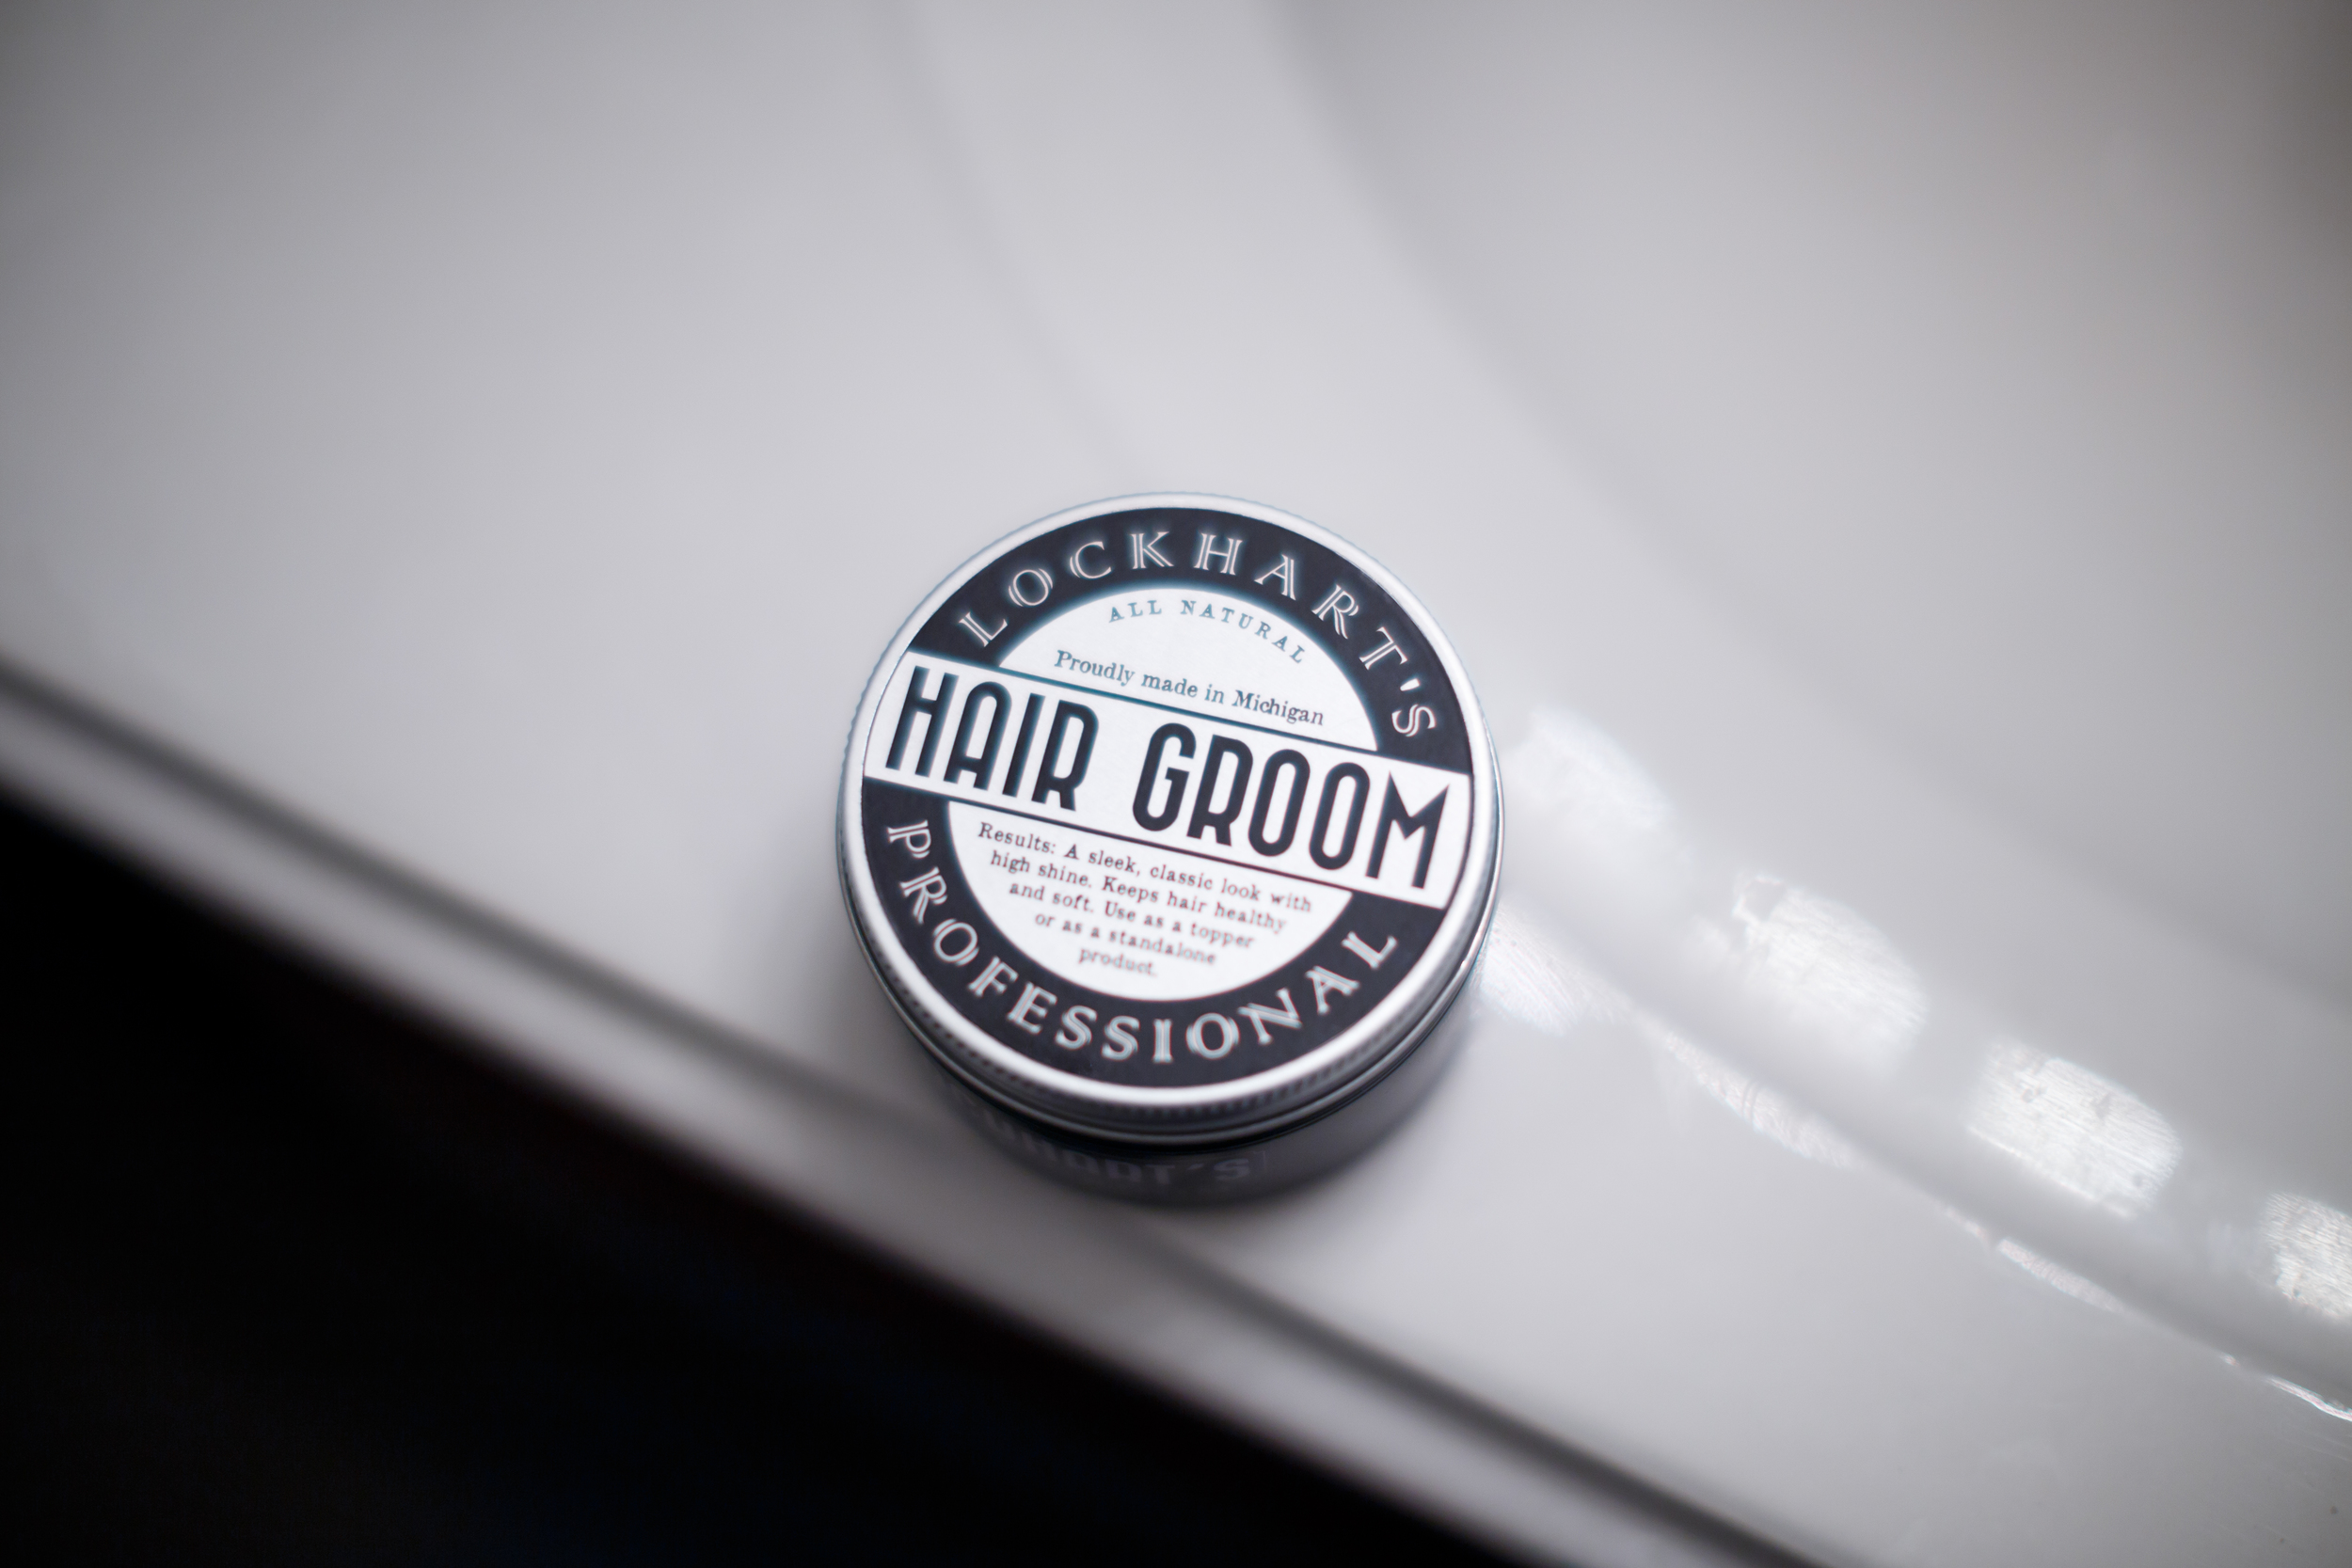 Lockhart's Professional Hair Groom Review ThePomp Pomp Pompadour Hair Butter Cream Lotion Pomade